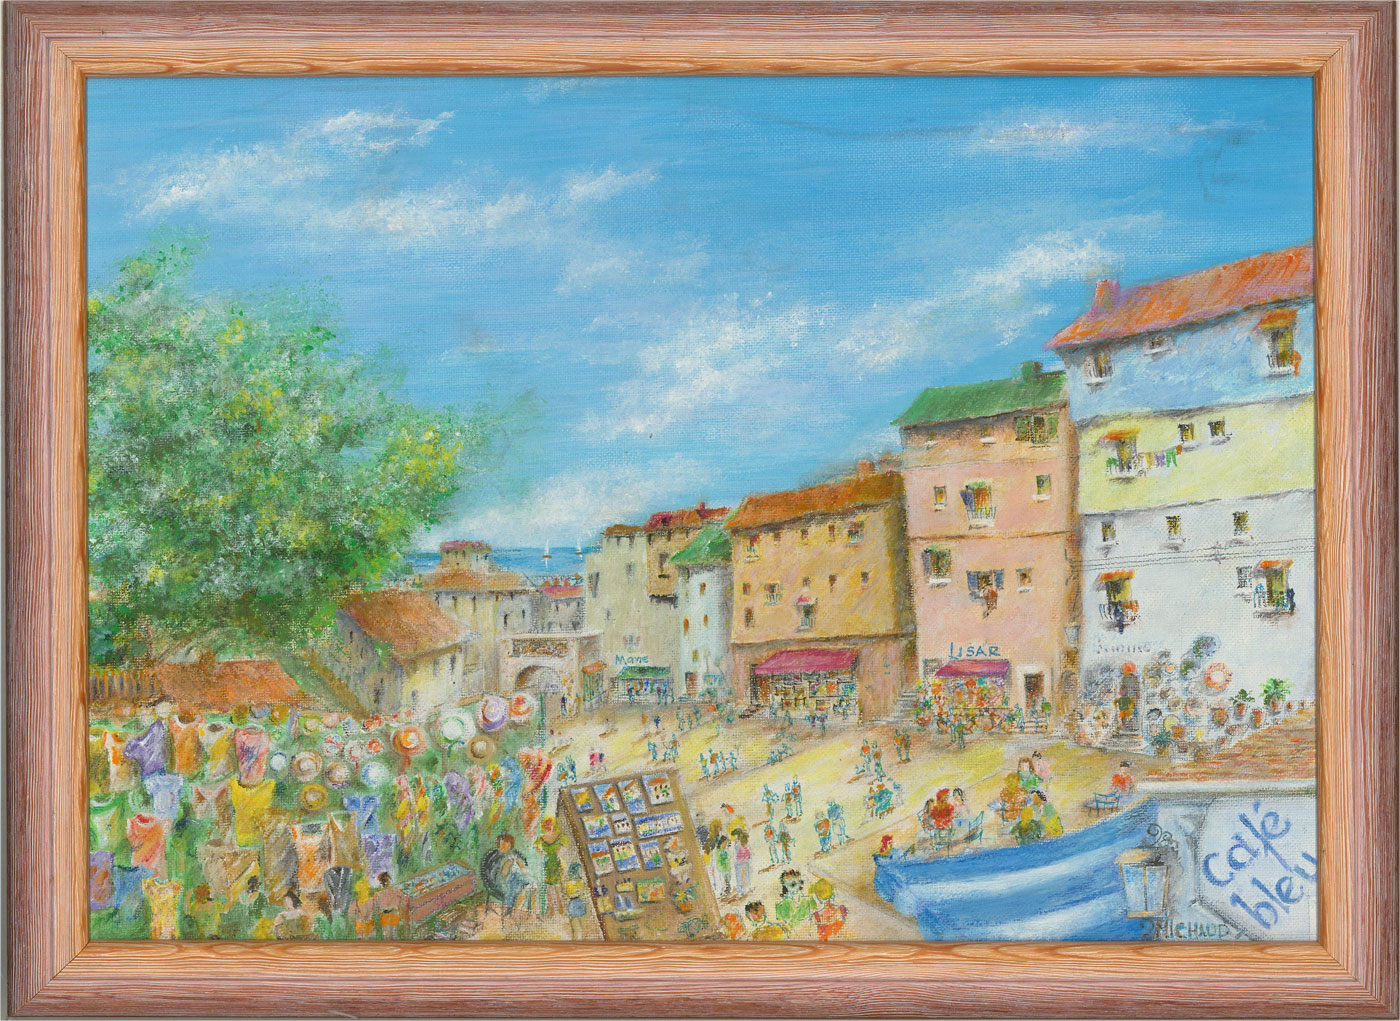 Dudley Michaud - Contemporary Acrylic, Market Day, South of France